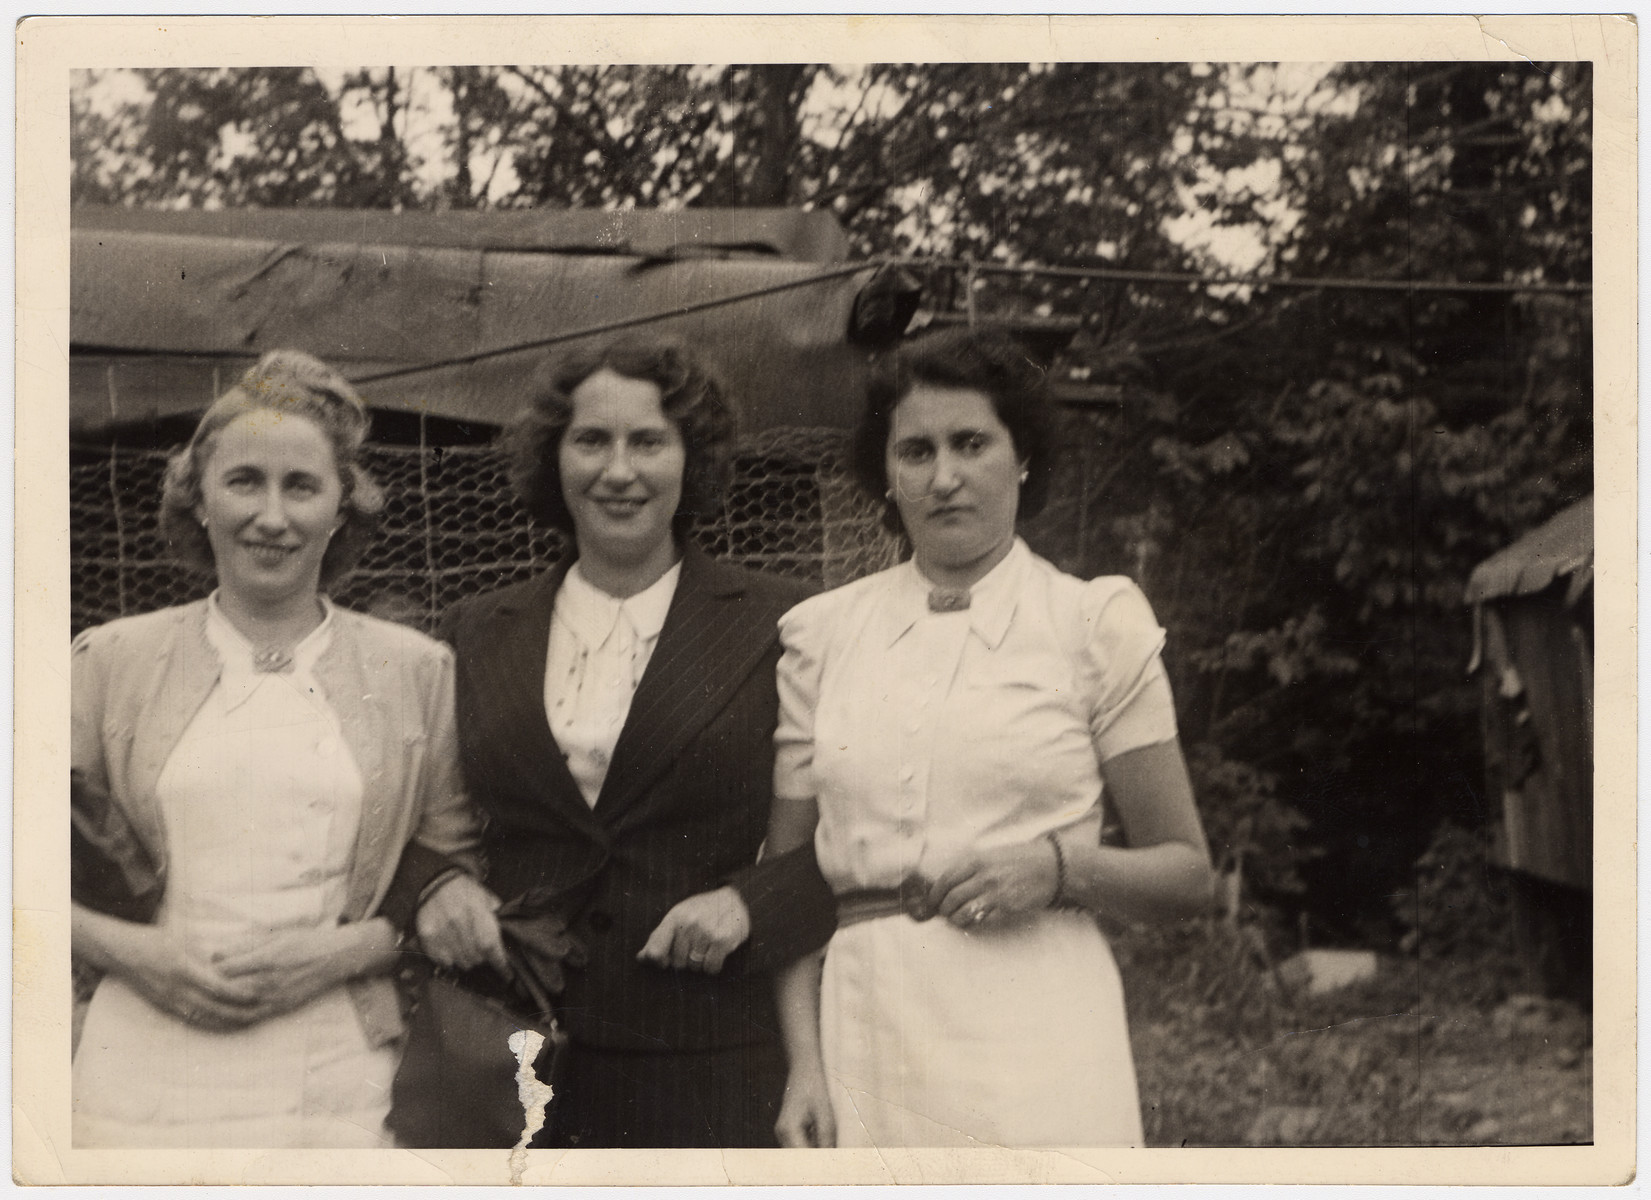 The three Holzmann sisters, Martha, Erna, and Irma (left to right).